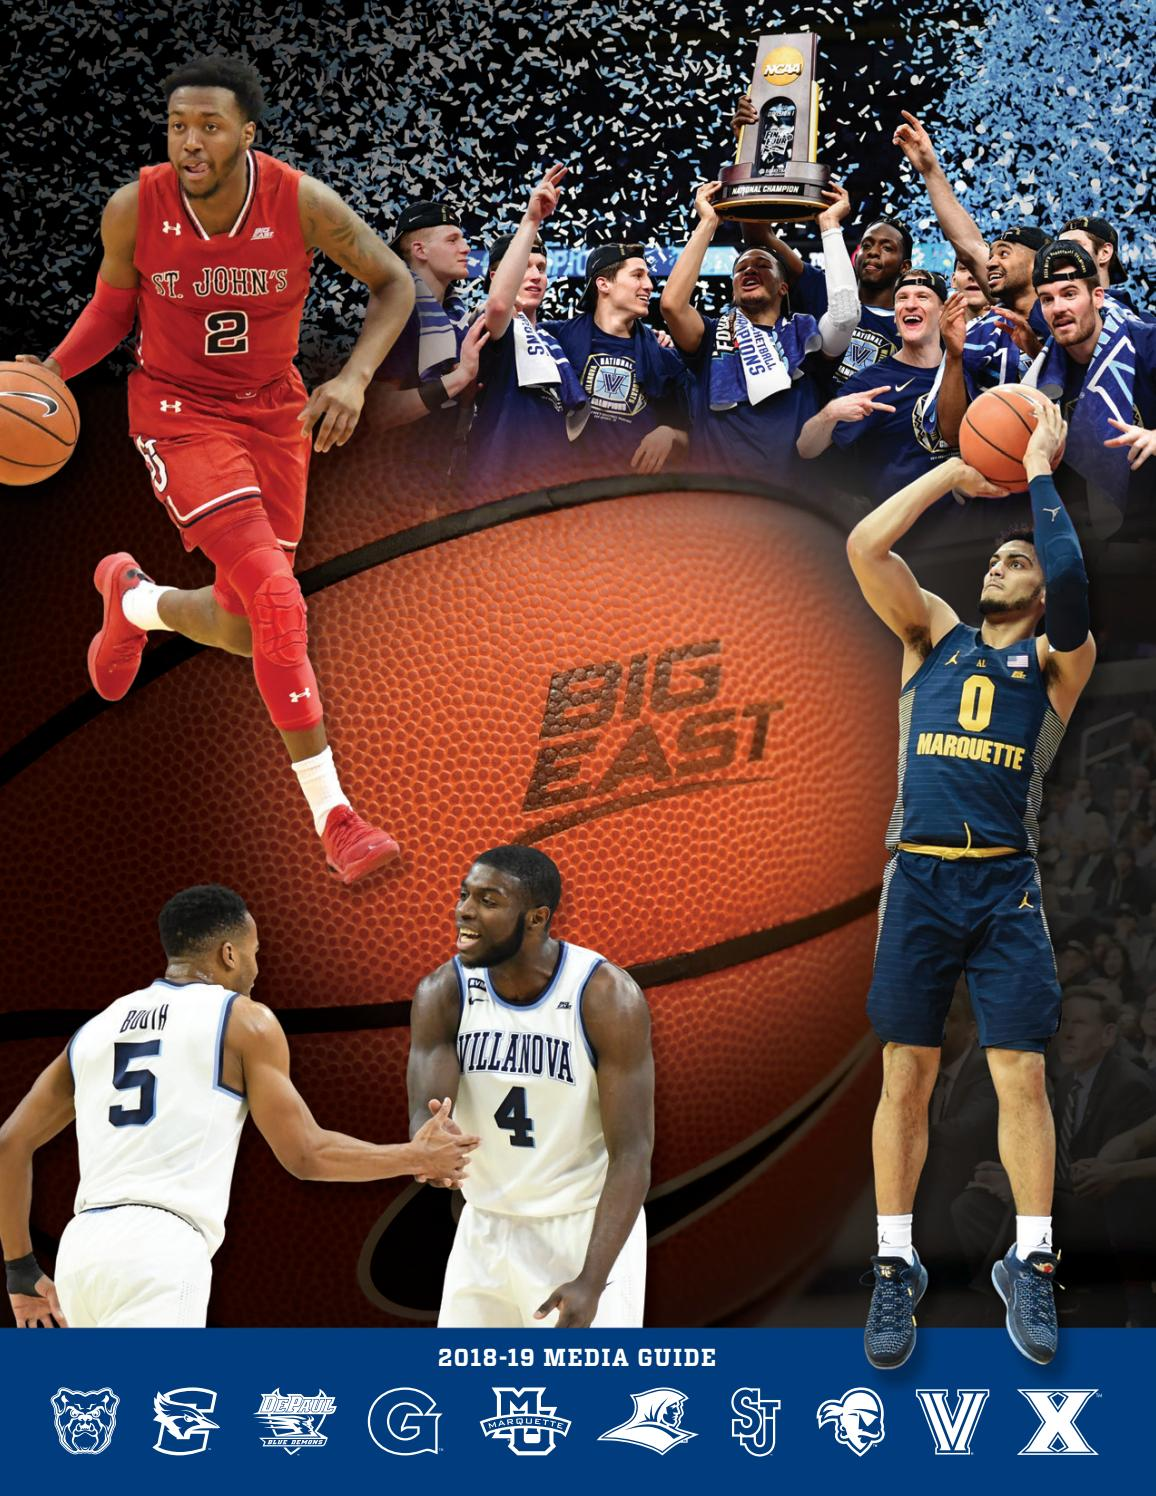 f09629ac789 2018-19 Men s Basketball Media Guide by BIG EAST Conference - issuu